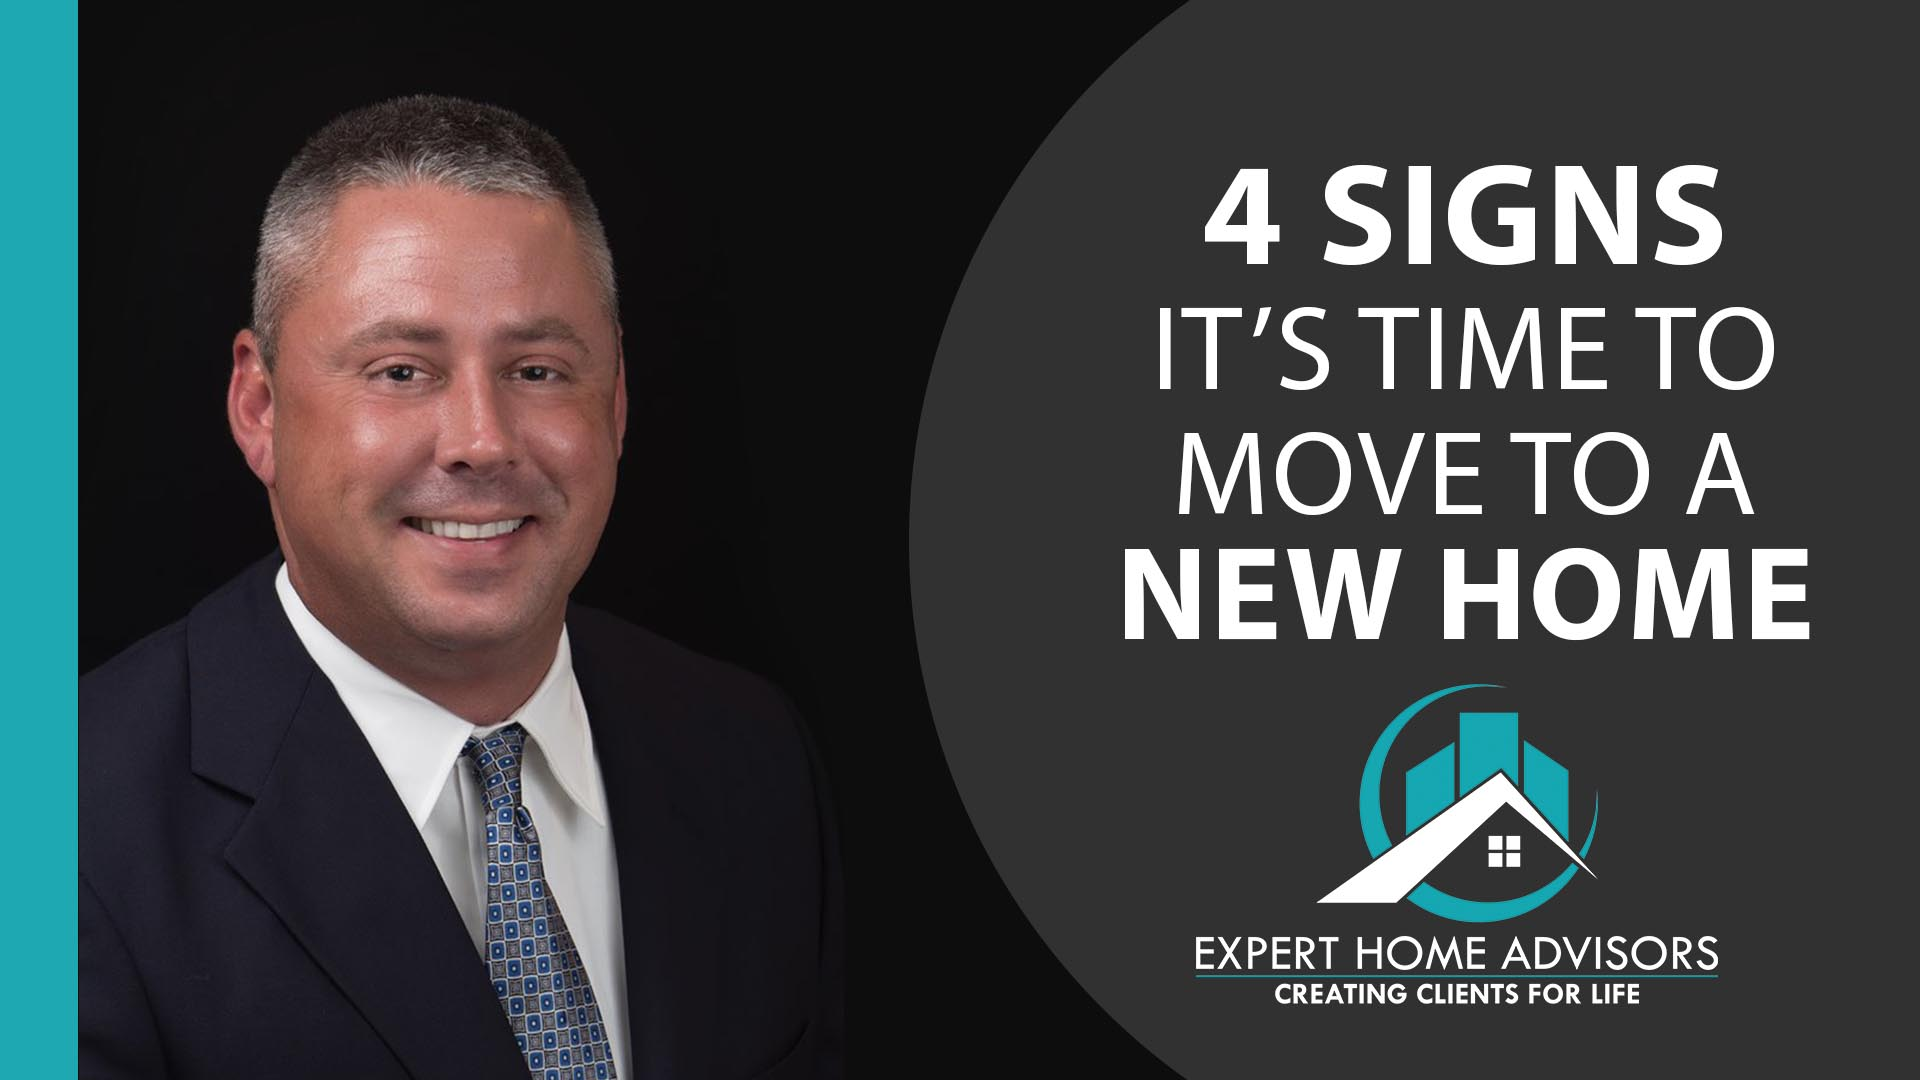 What Are the Signs That It's Time to Move?